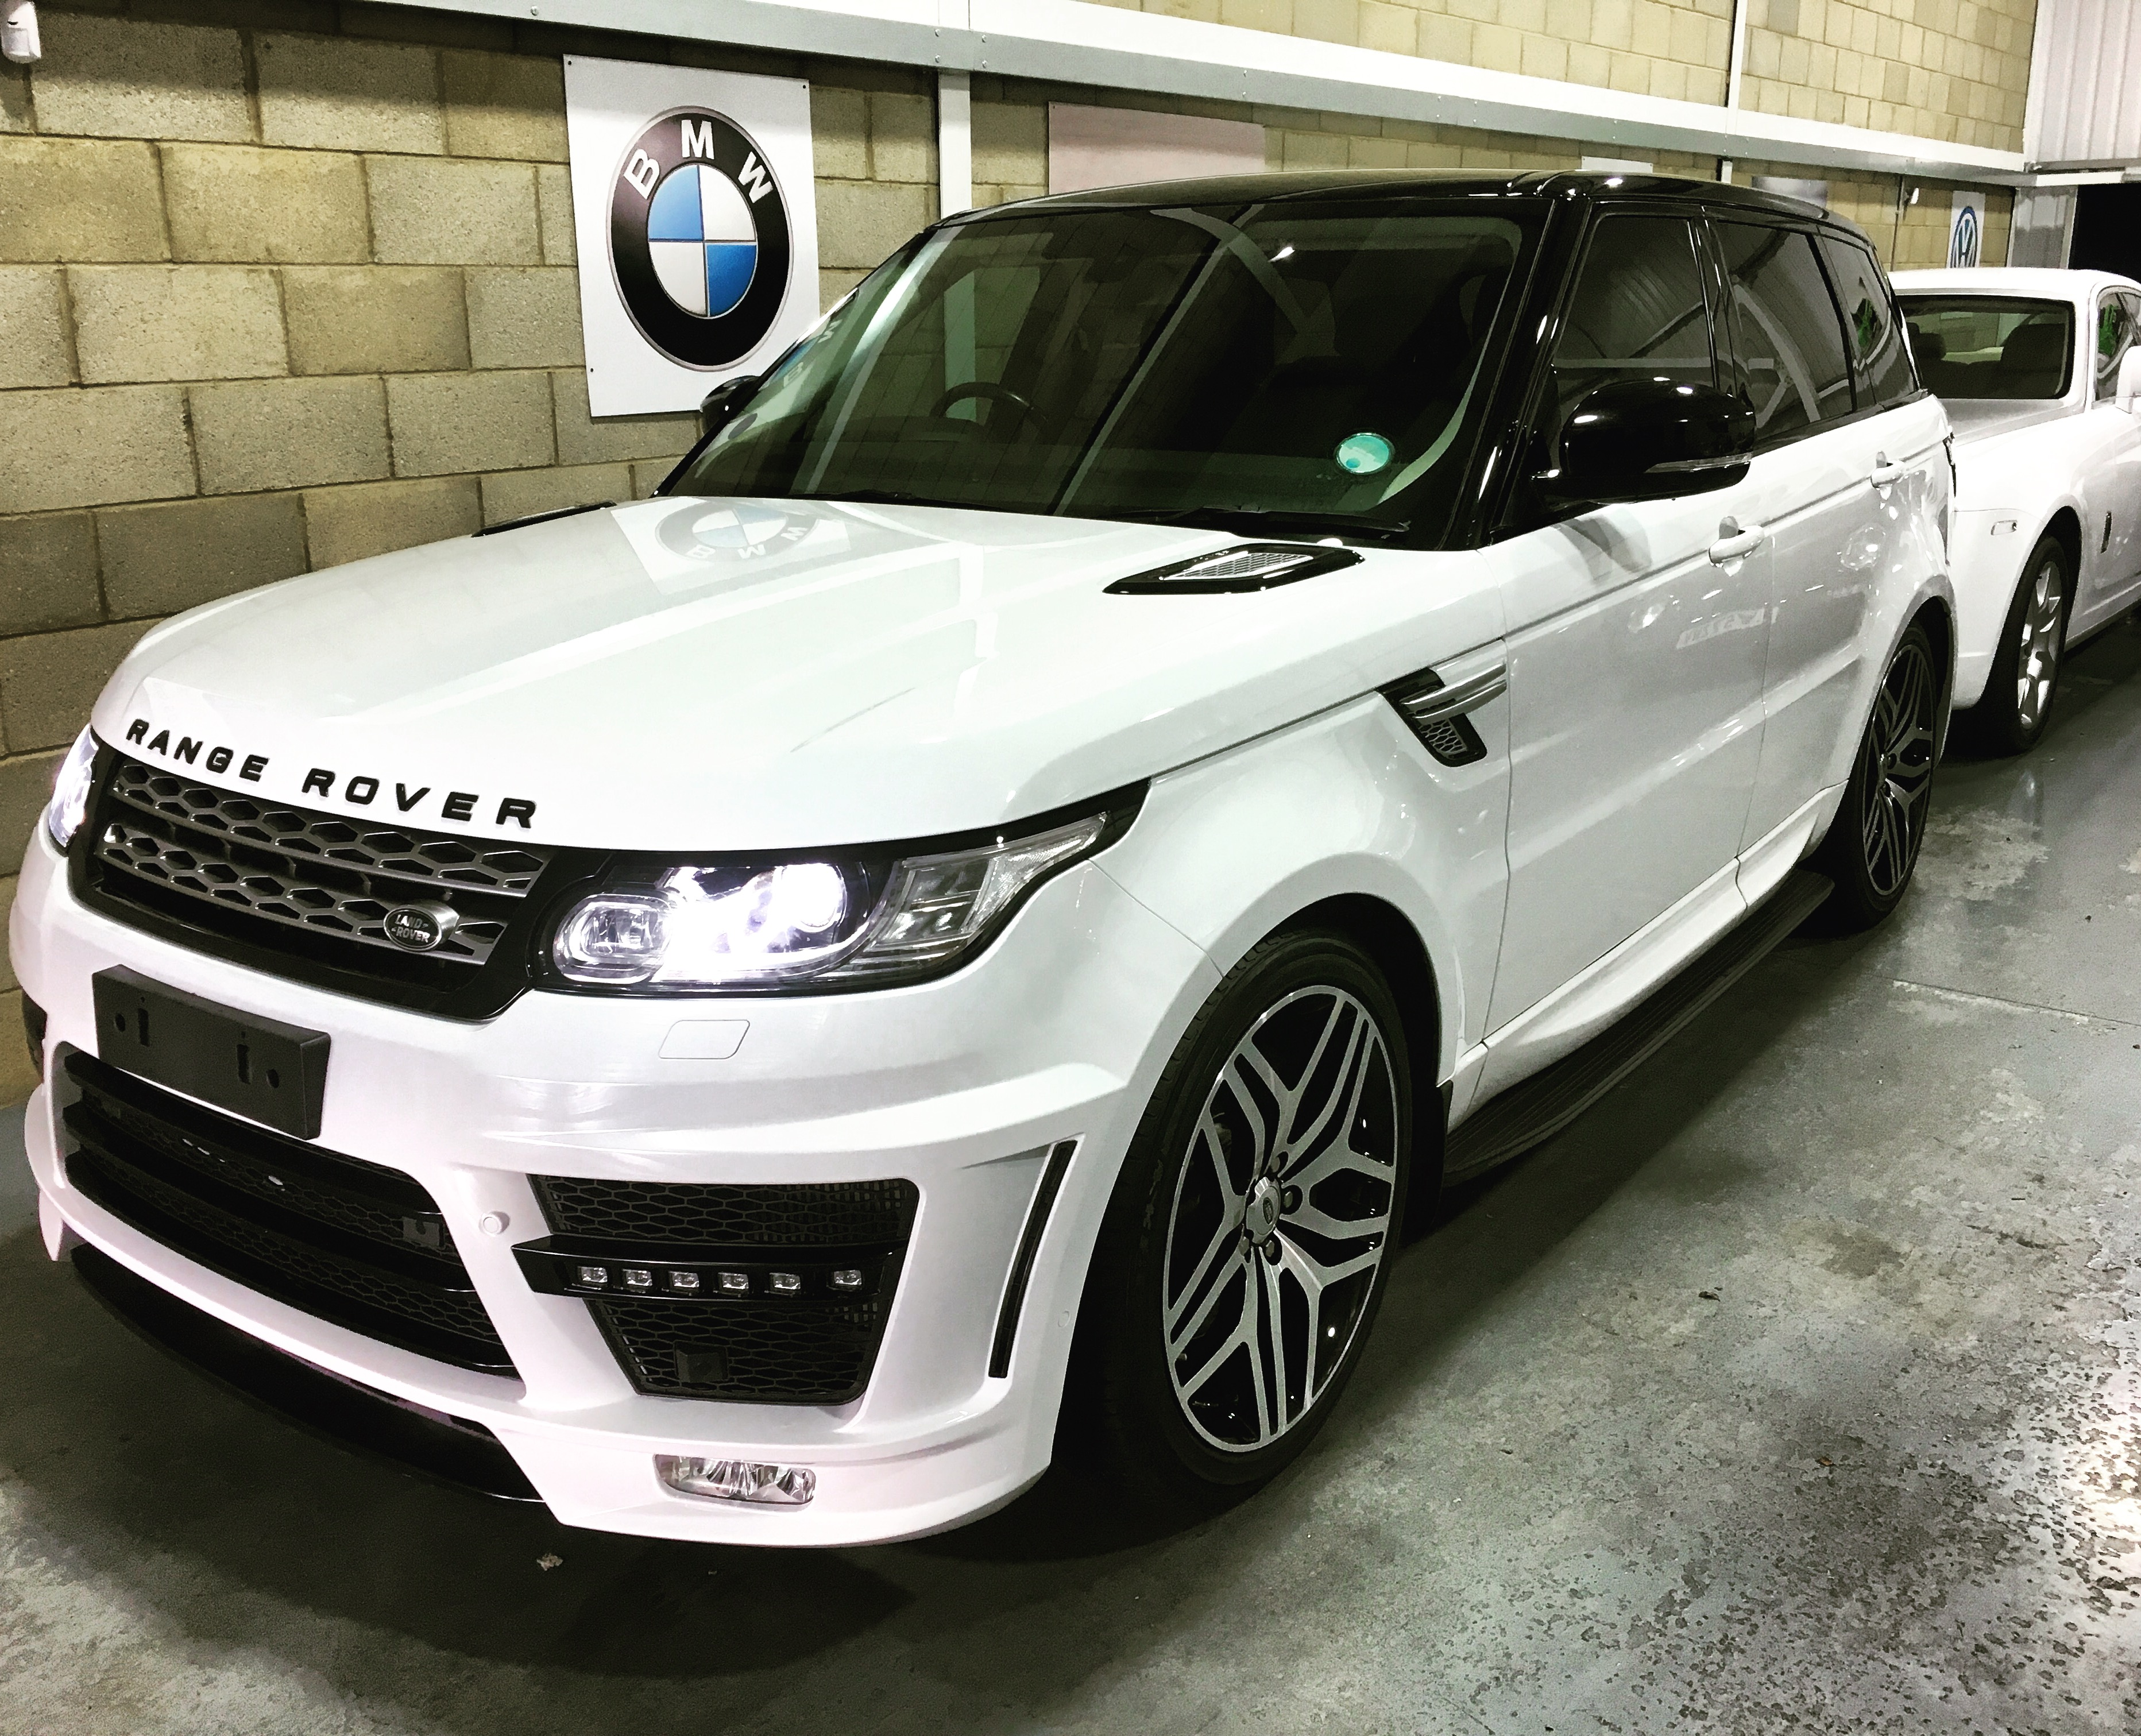 helicopter hire london with New Range Rover Added To Our Fleet on Elite Helicopter New To Fleet besides LHR moreover Fjord Tours From Bergen During Winter Season as well Half Day Paintballing Experience Leeds additionally Private Helicopter.